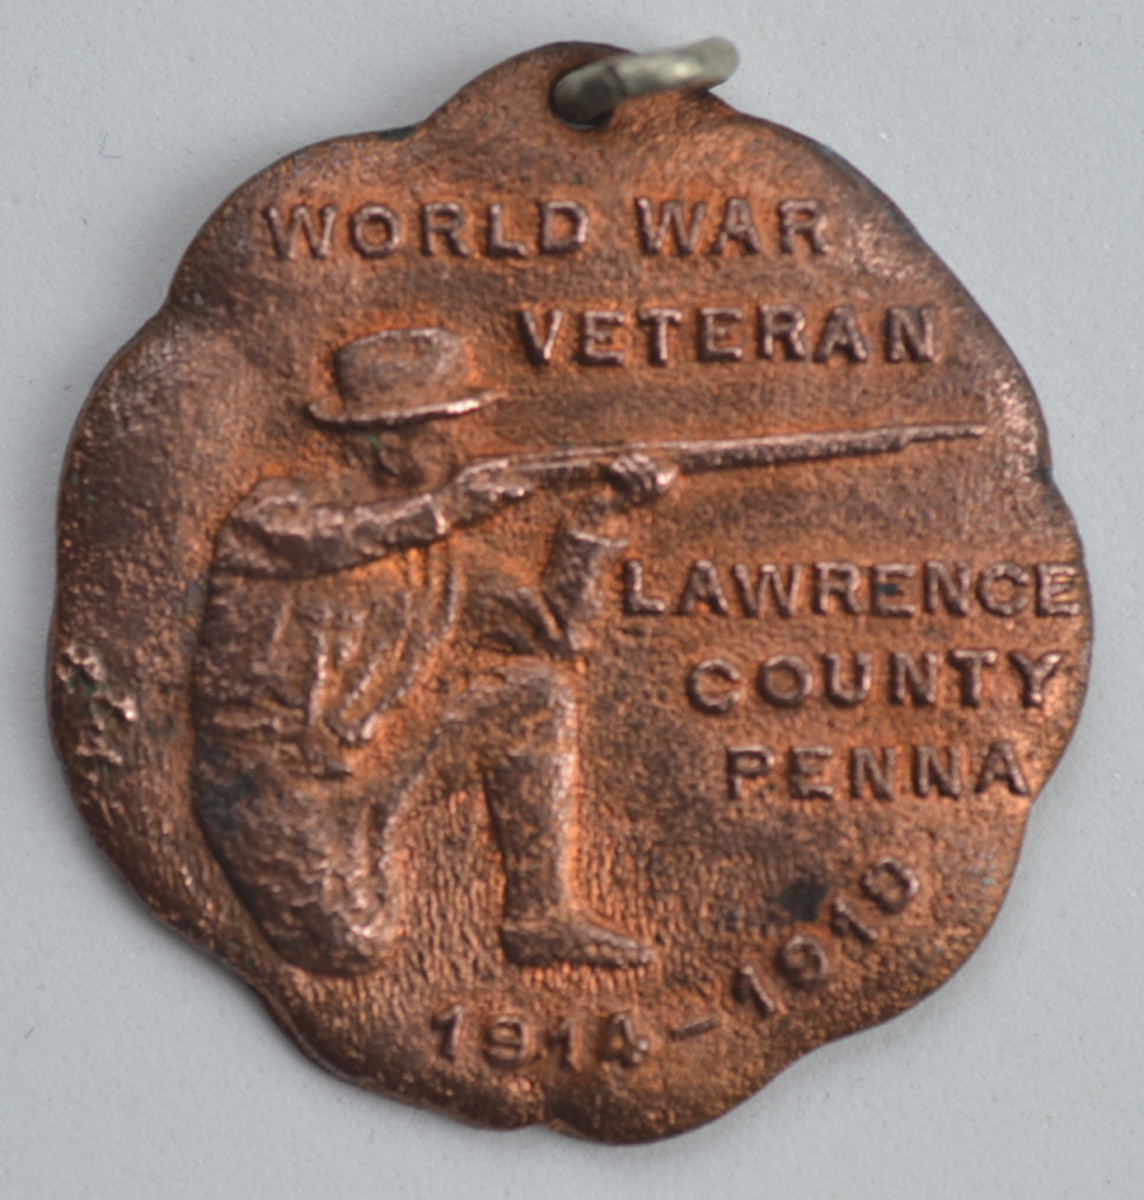 Heeren Brothers second WWI medal design was adopted and issued by the New Castle Herald to veterans of Lawrence County, Pennsylvania.